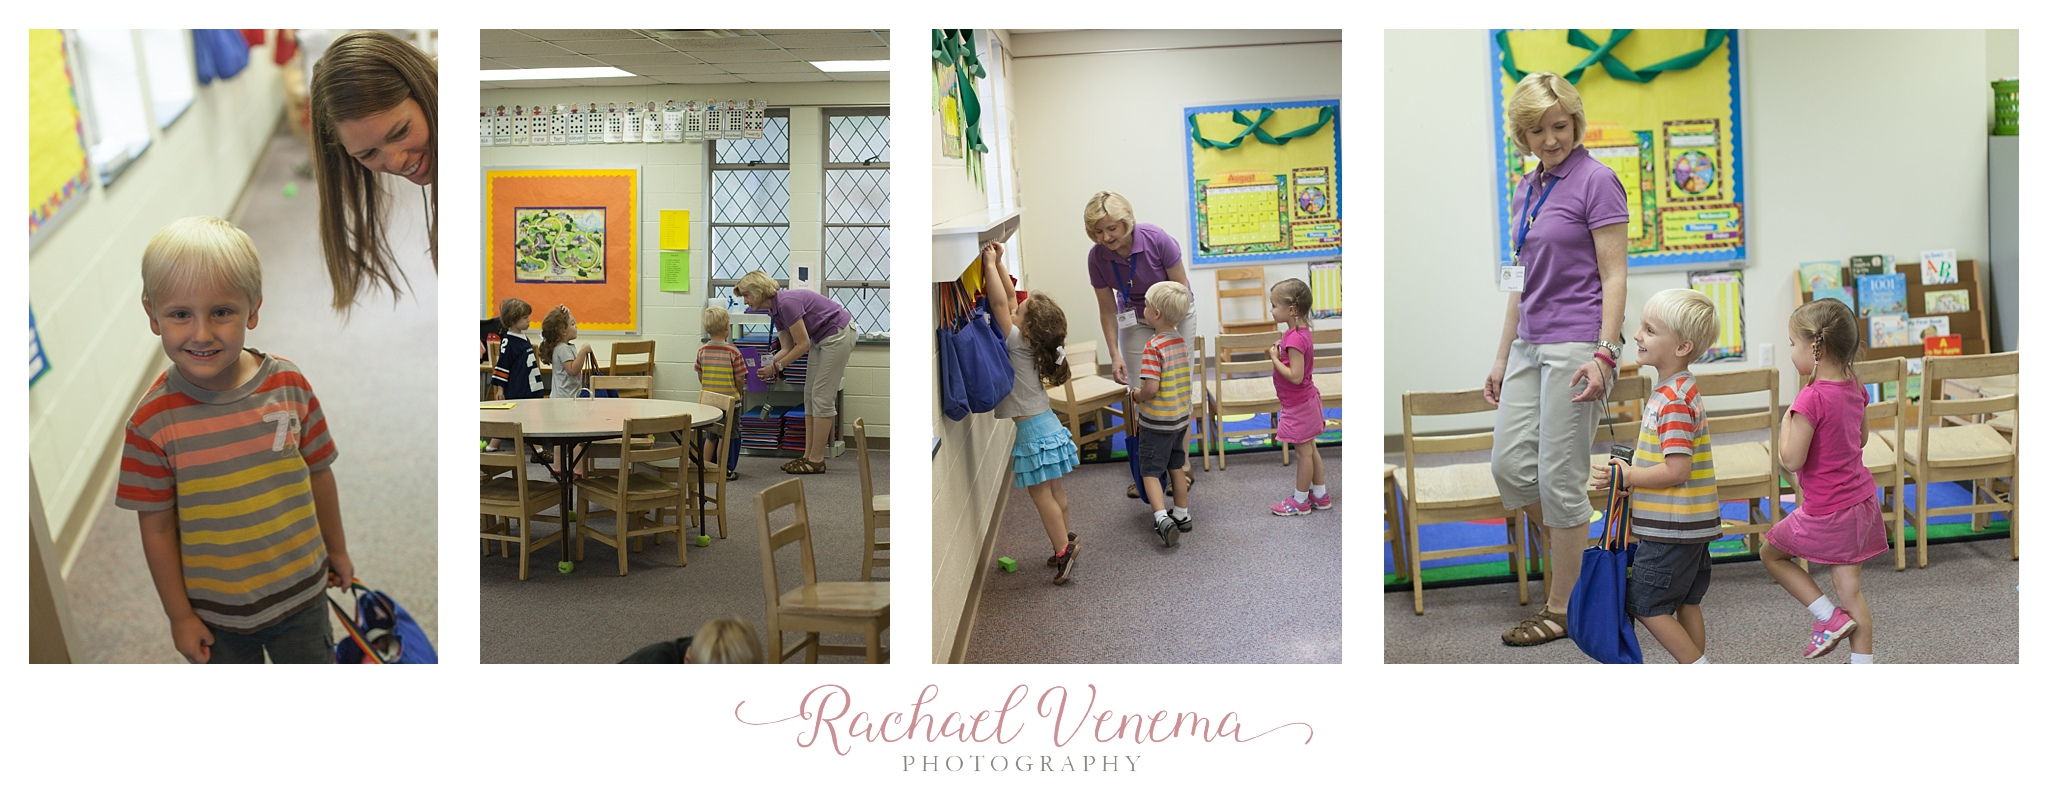 9-Tips-First-Day-of-School-Photos-6.jpg